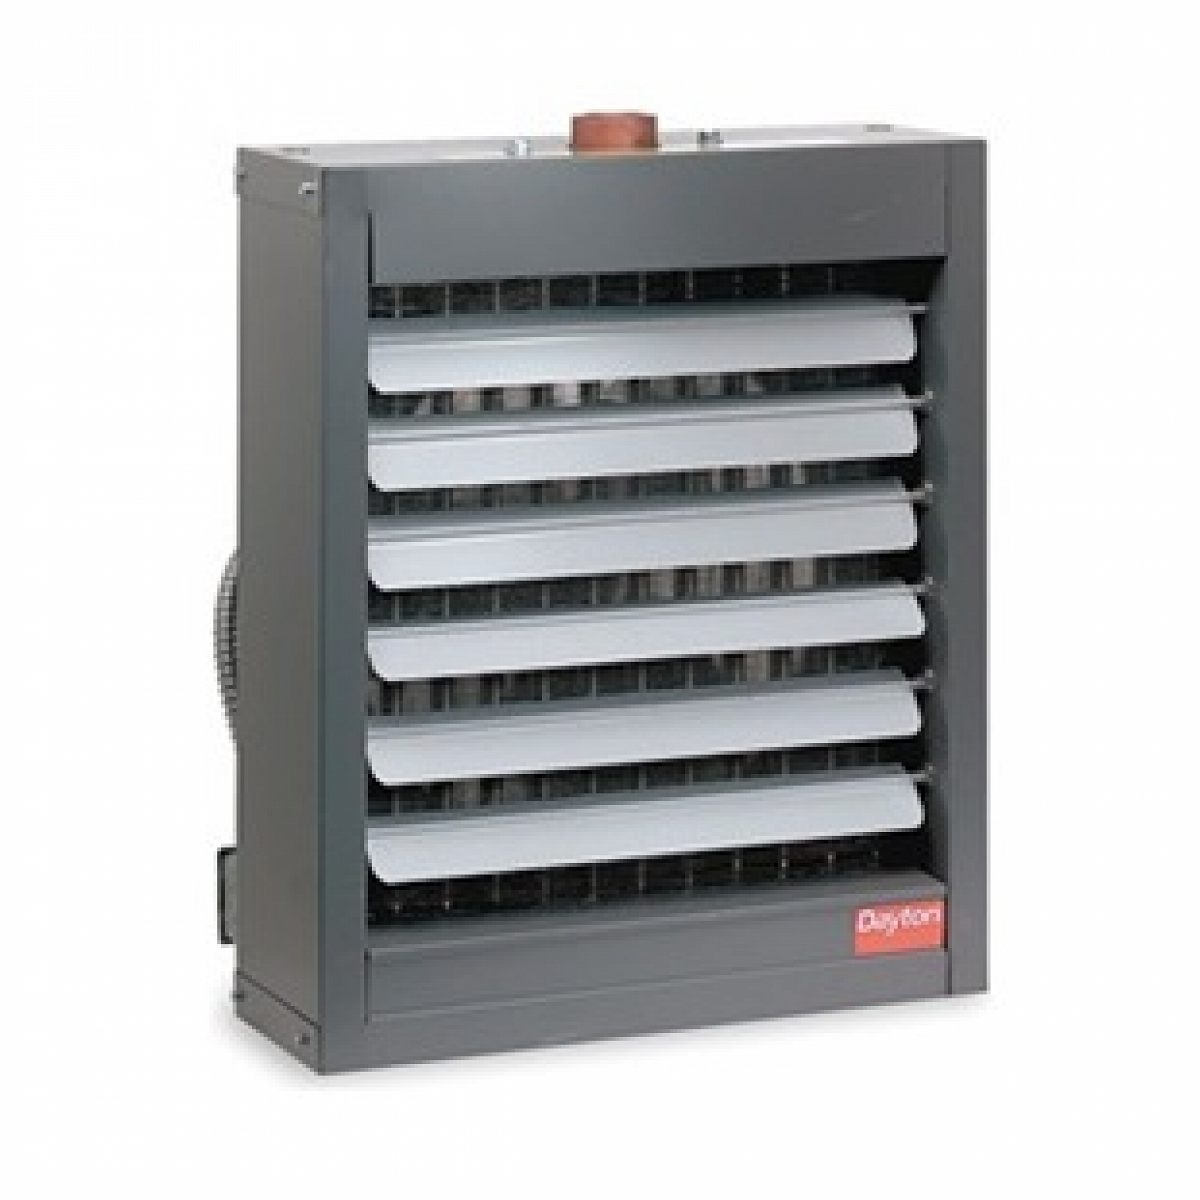 Dayton Hydronic Unit Heater, 29 In. H, 2200 Cfm - Pricefalls.com